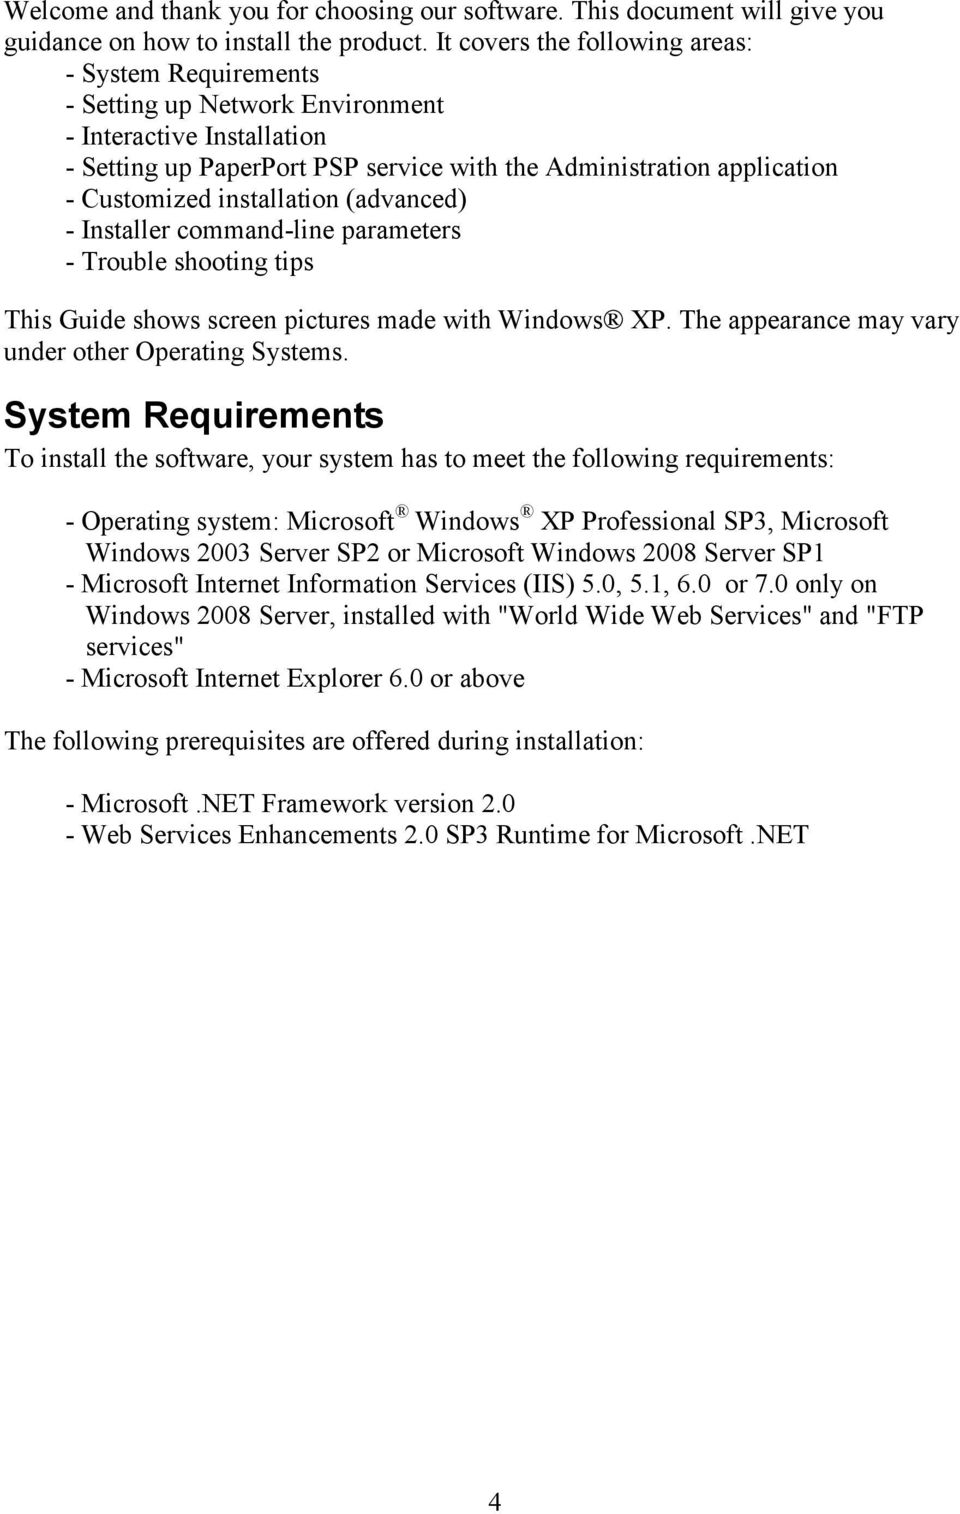 installation (advanced) - Installer command-line parameters - Trouble shooting tips This Guide shows screen pictures made with Windows XP. The appearance may vary under other Operating Systems.